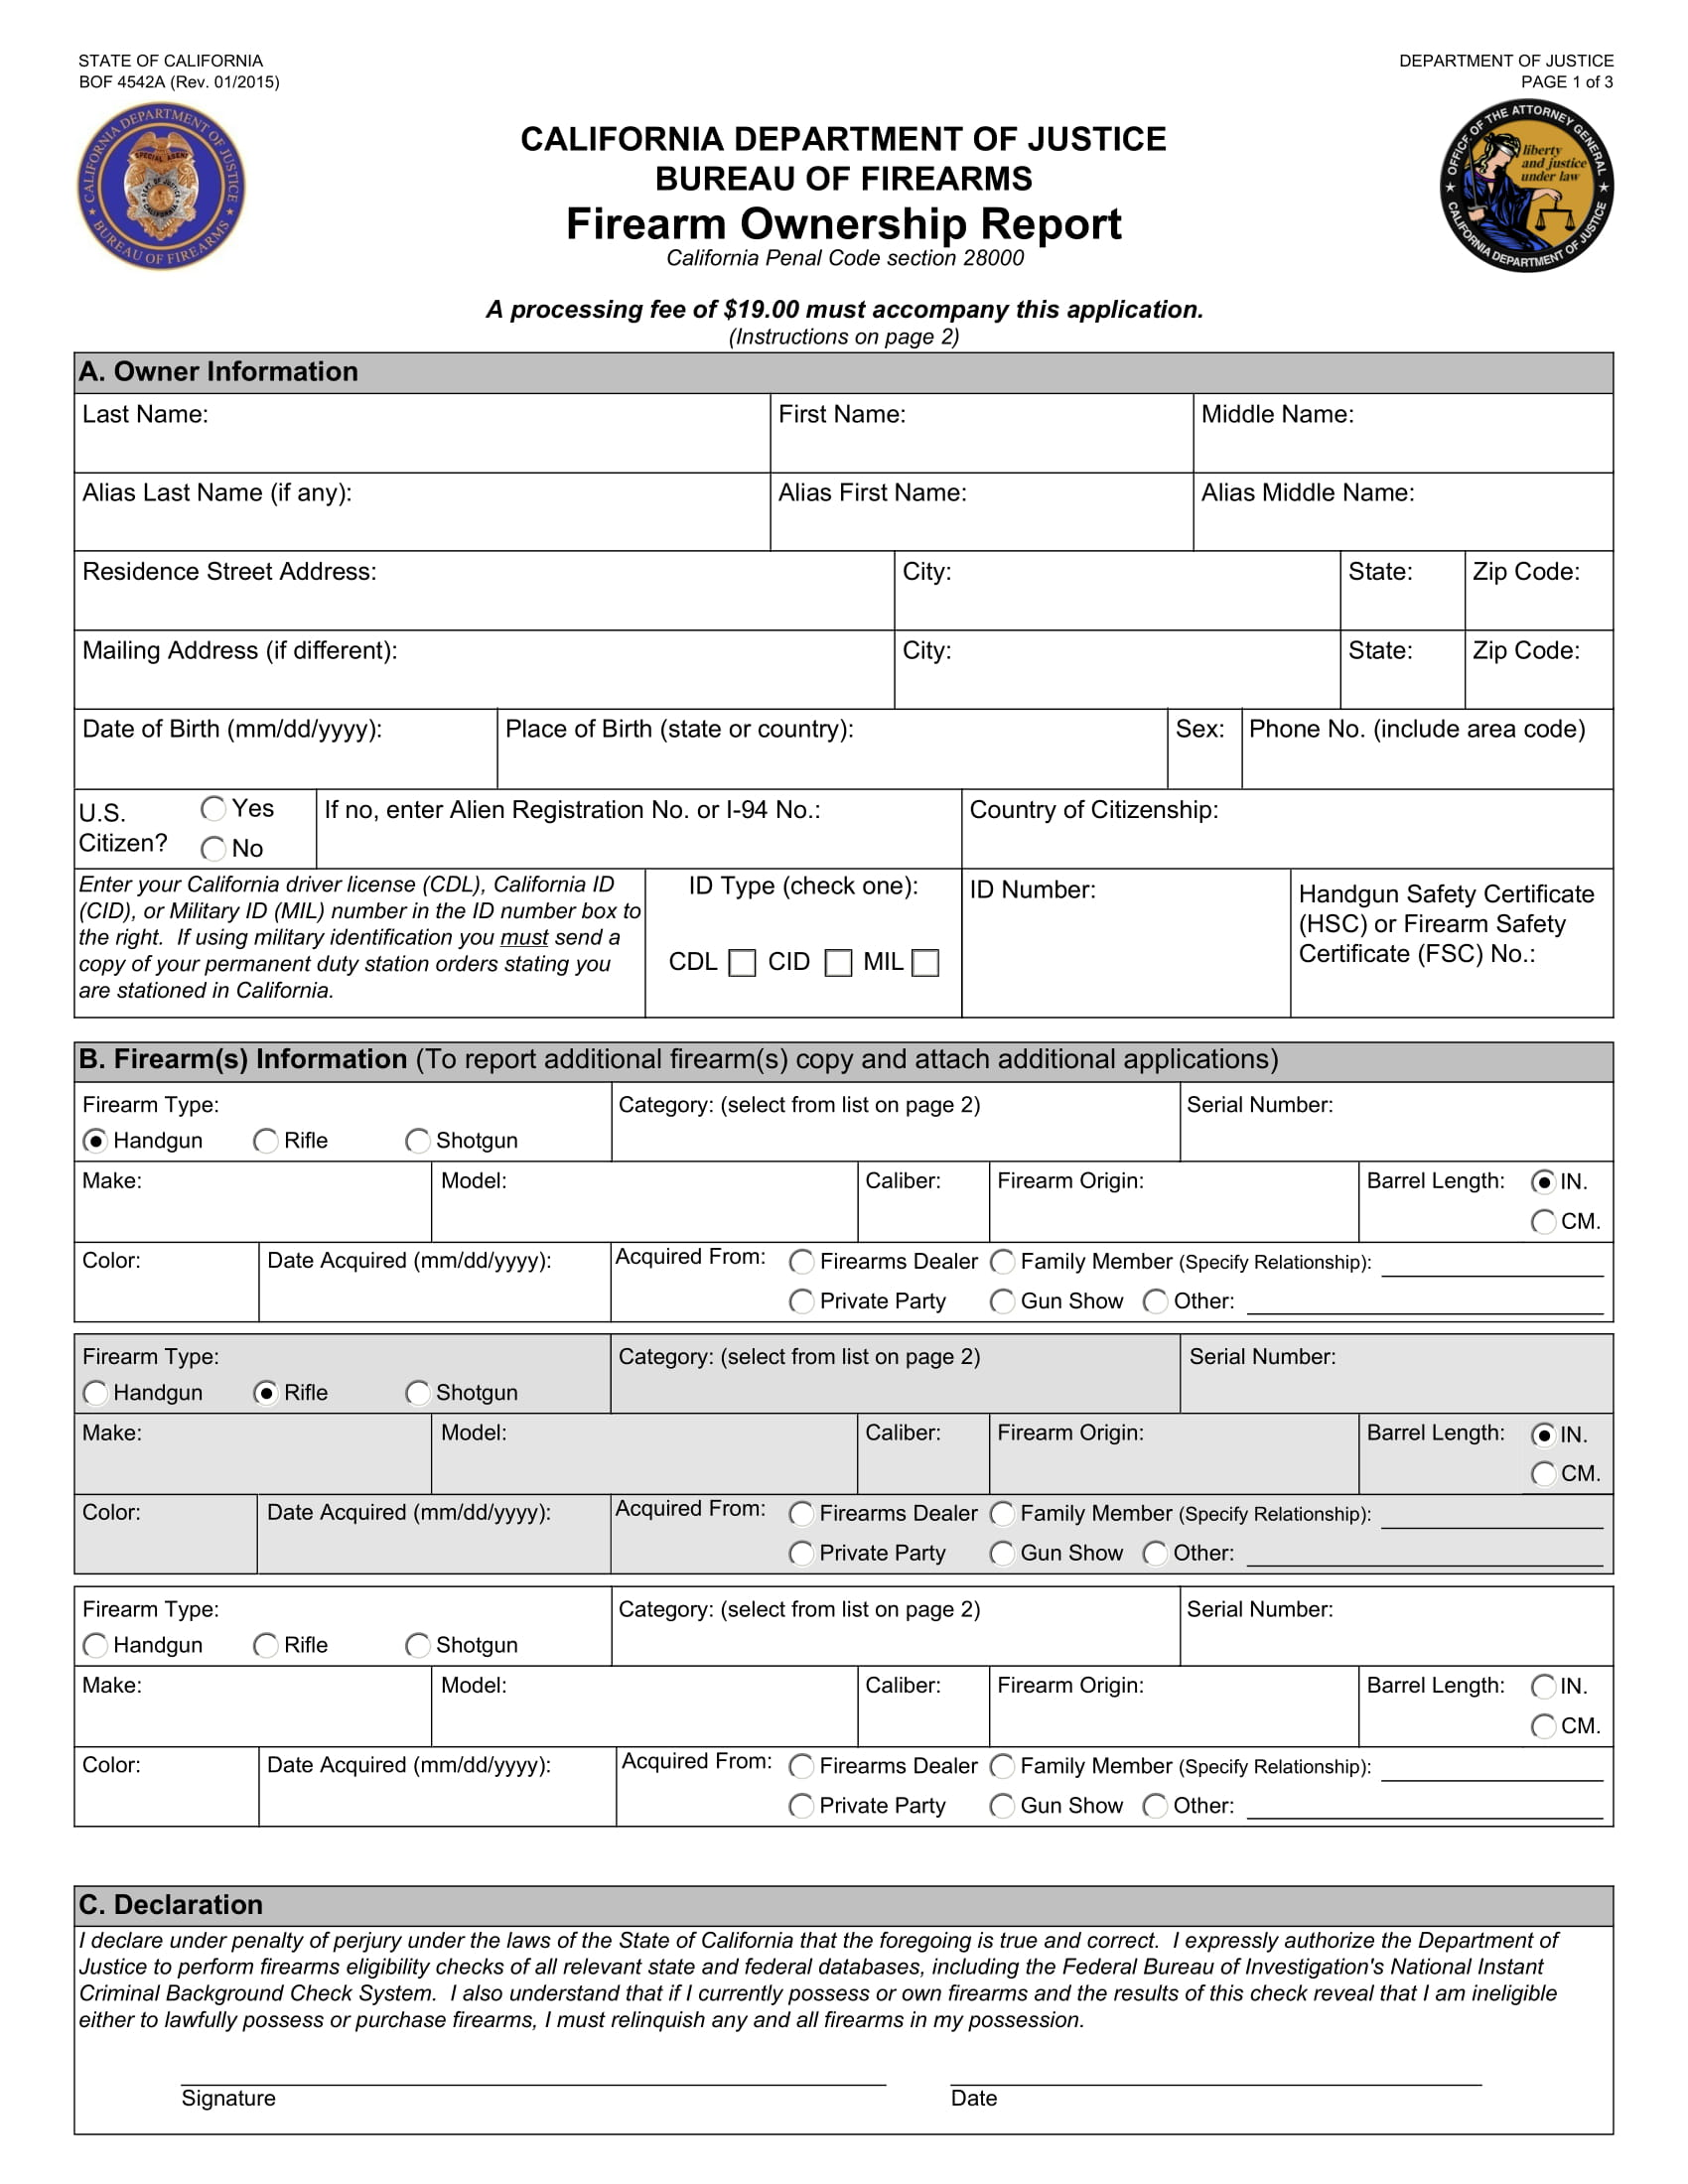 legal firearm ownership report form 1